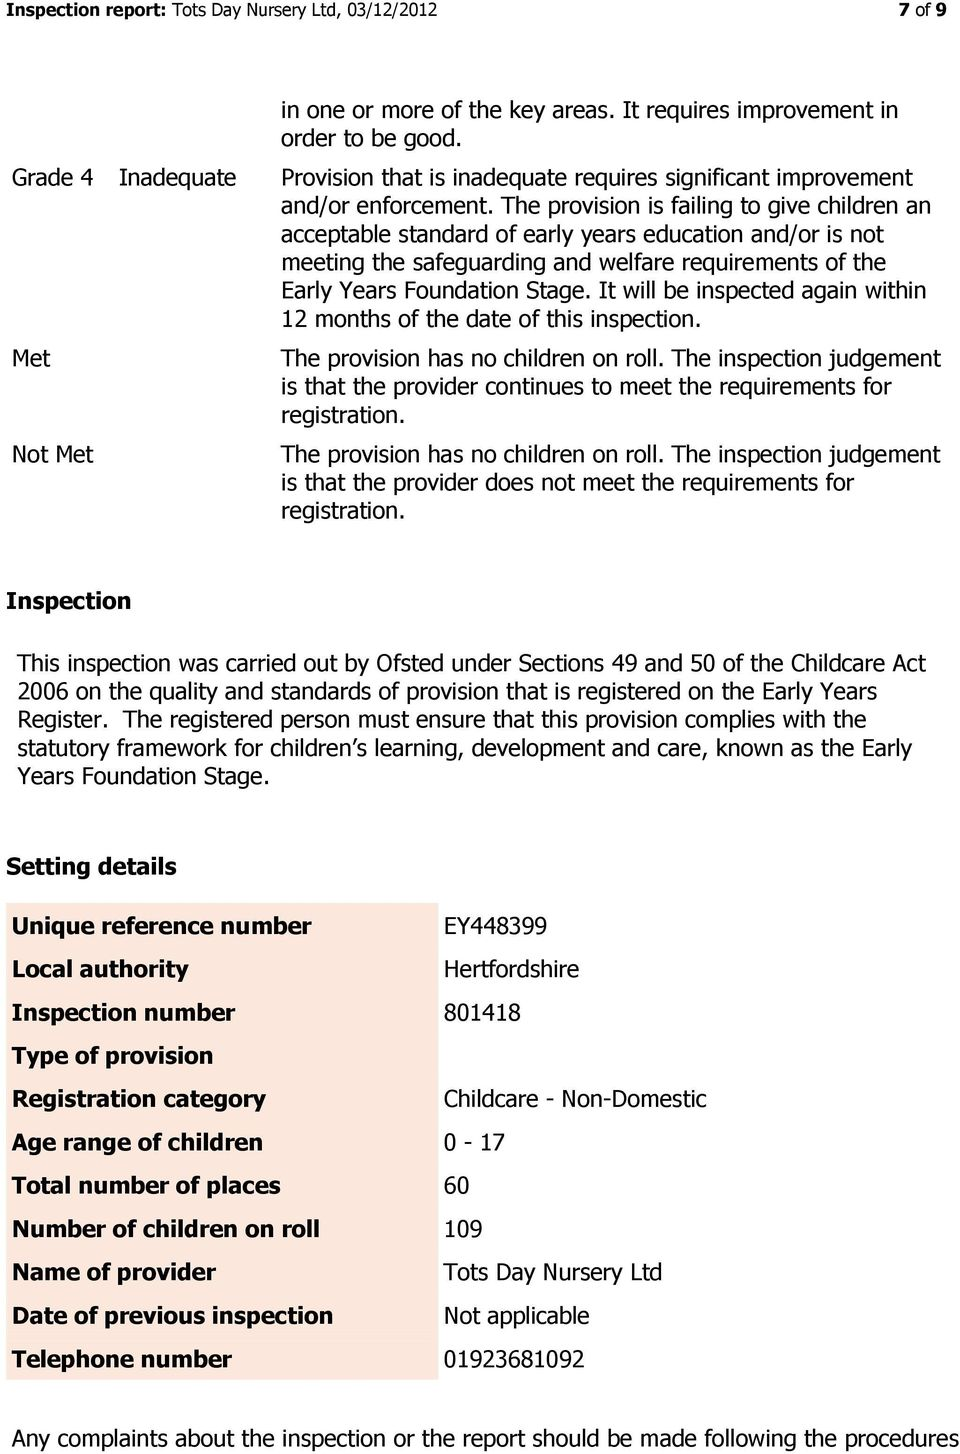 The provision is failing to give children an acceptable standard of early years education and/or is not meeting the safeguarding and welfare requirements of the Early Years Foundation Stage.